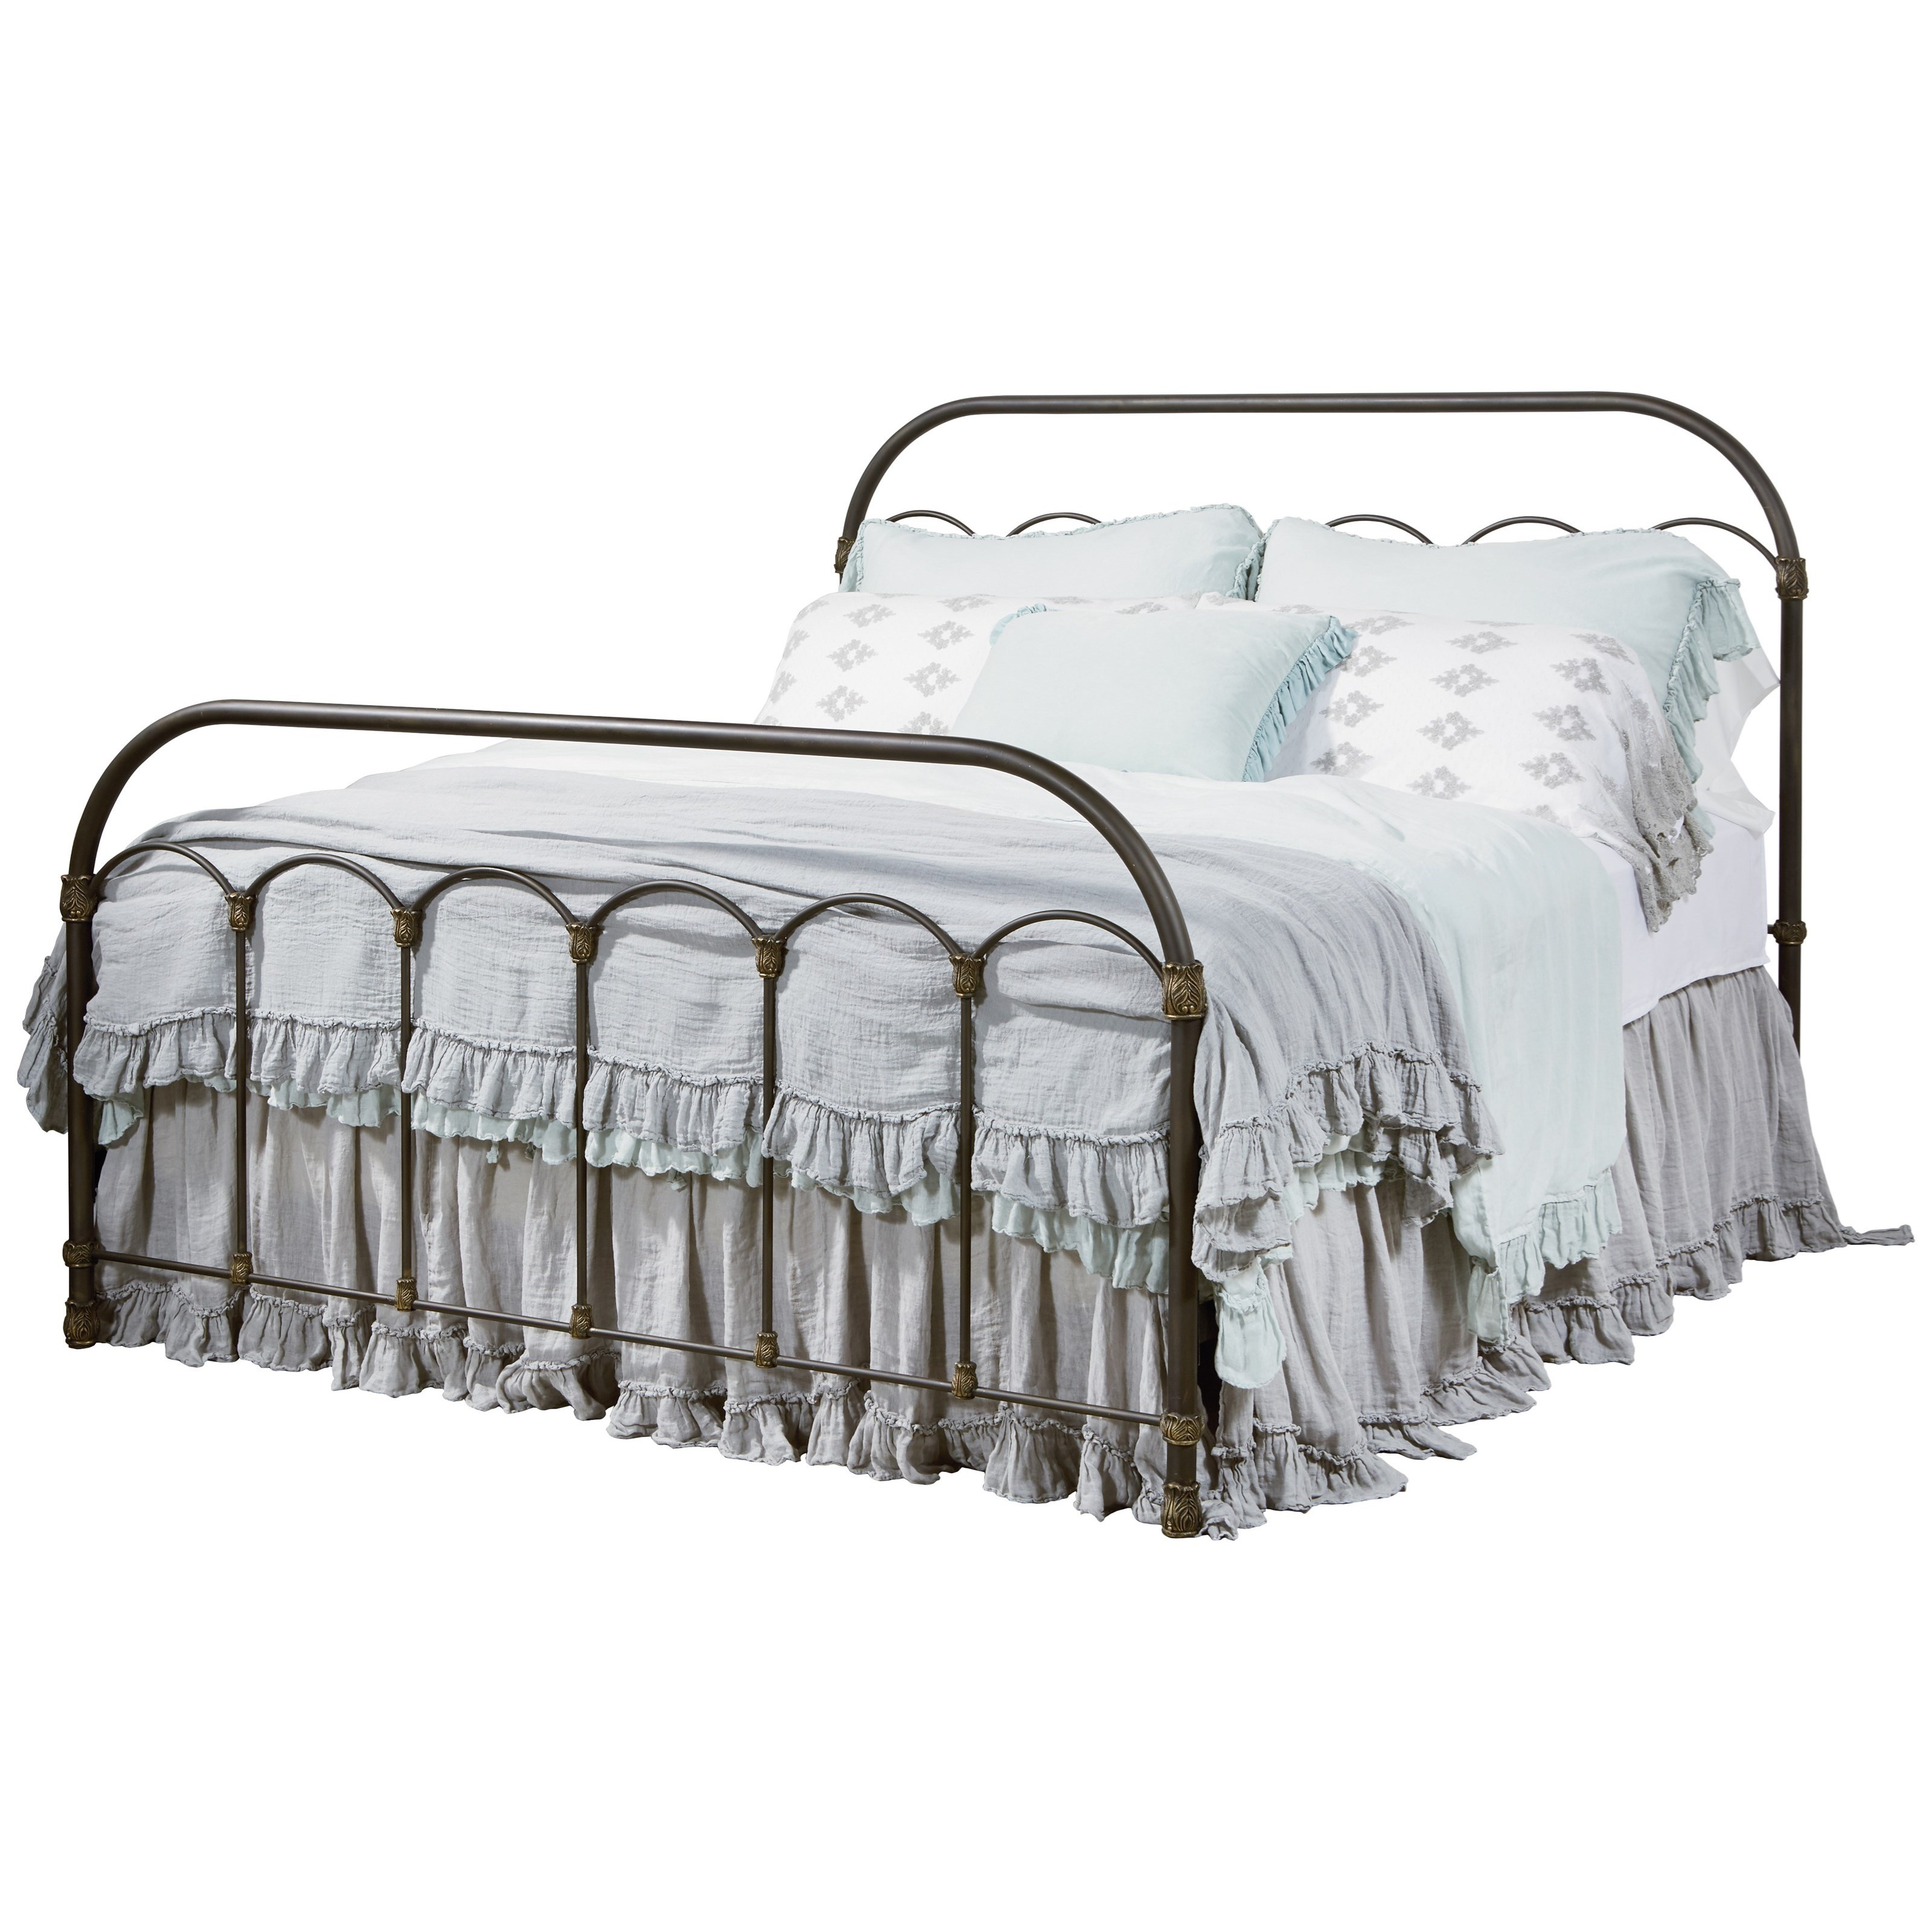 Magnolia Home by Joanna Gaines Primitive King Colonnade Metal Bed - Item Number: 2070468W+2070412W